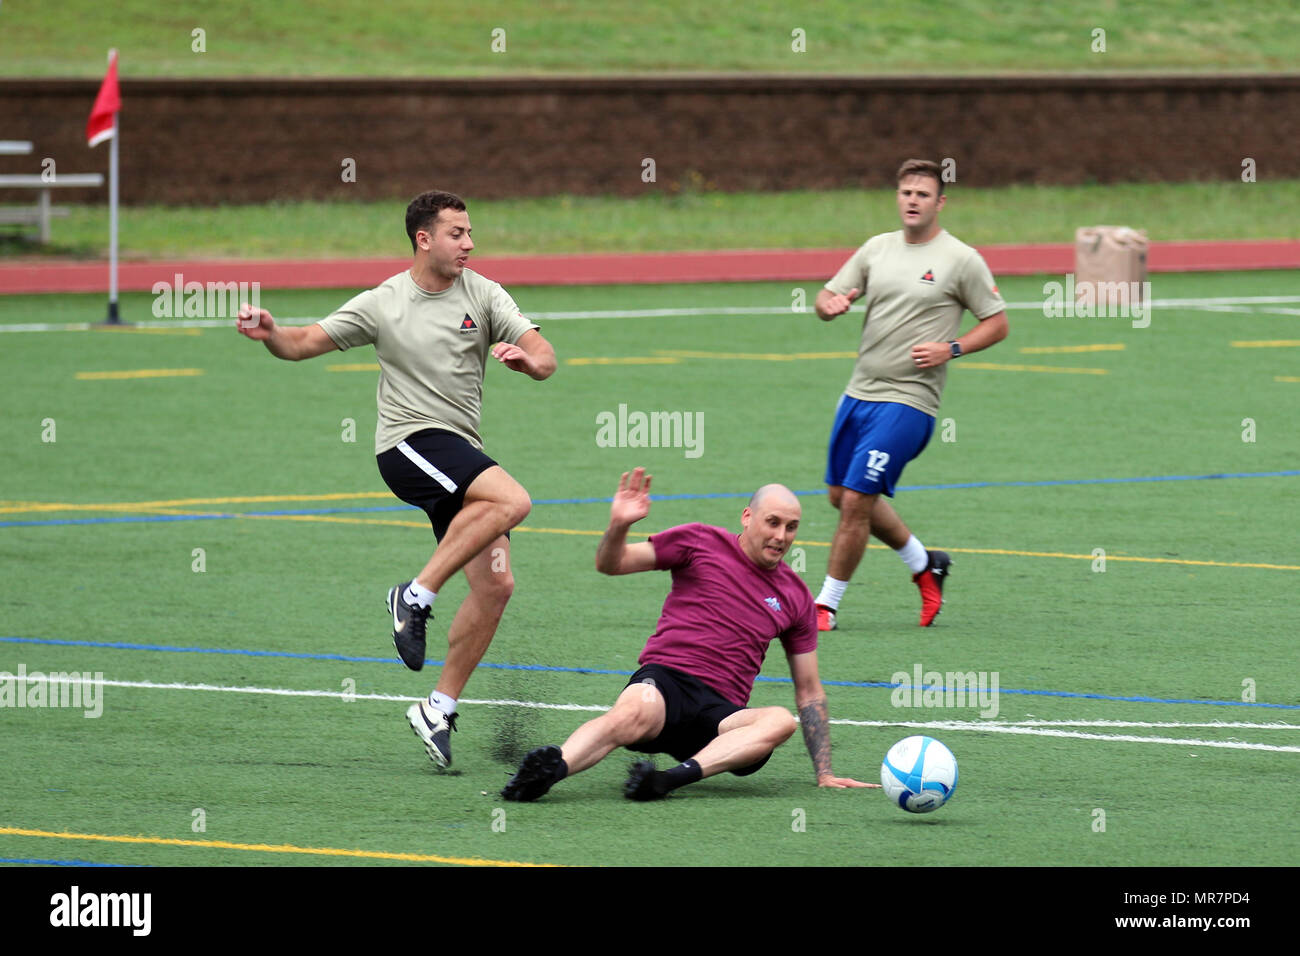 """British Paratroopers assigned to the 3rd (United Kingdom) Division's Signal Regiment and from the 216th Parachute Signal Squadron fight to gain ball possession during an All American Week 100 soccer match at Towle Stadium, Fort Bragg, N.C., May 23, 2017. During All American Week 100, Paratroopers from throughout the Division competed in softball, soccer, flag football, tug-of-war, combatives, boxing, a best squad competition, a combat fitness test and the Little Group of Paratroopers competition for bragging rights and a shot at """"Best Battalion."""" All American Week is an opportunity for Paratro - Stock Image"""